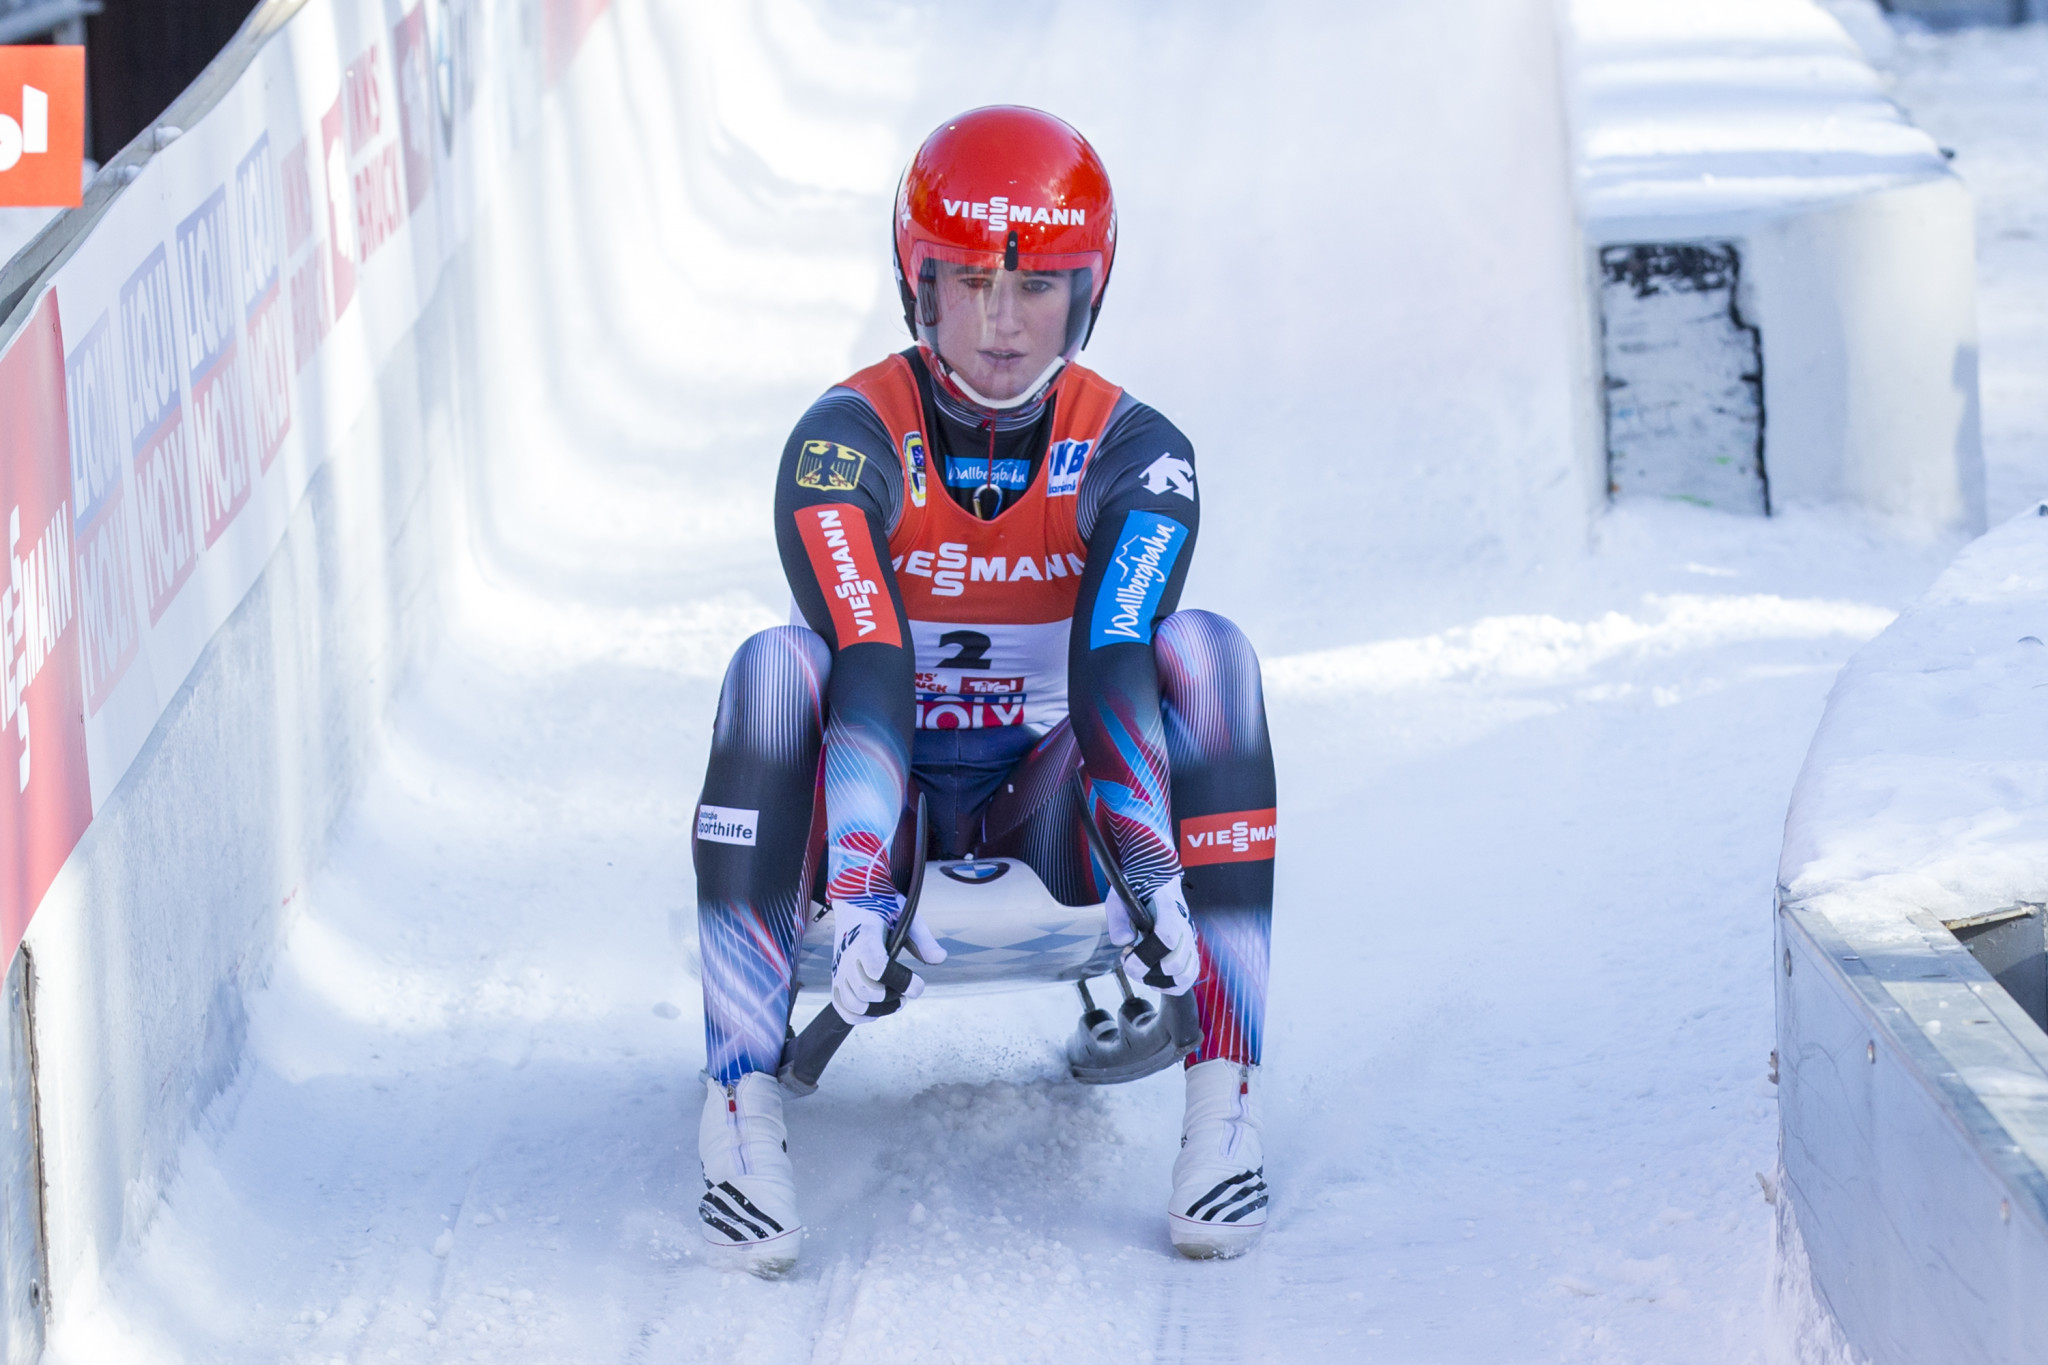 German dominance expected again on eve of Luge World Cup season